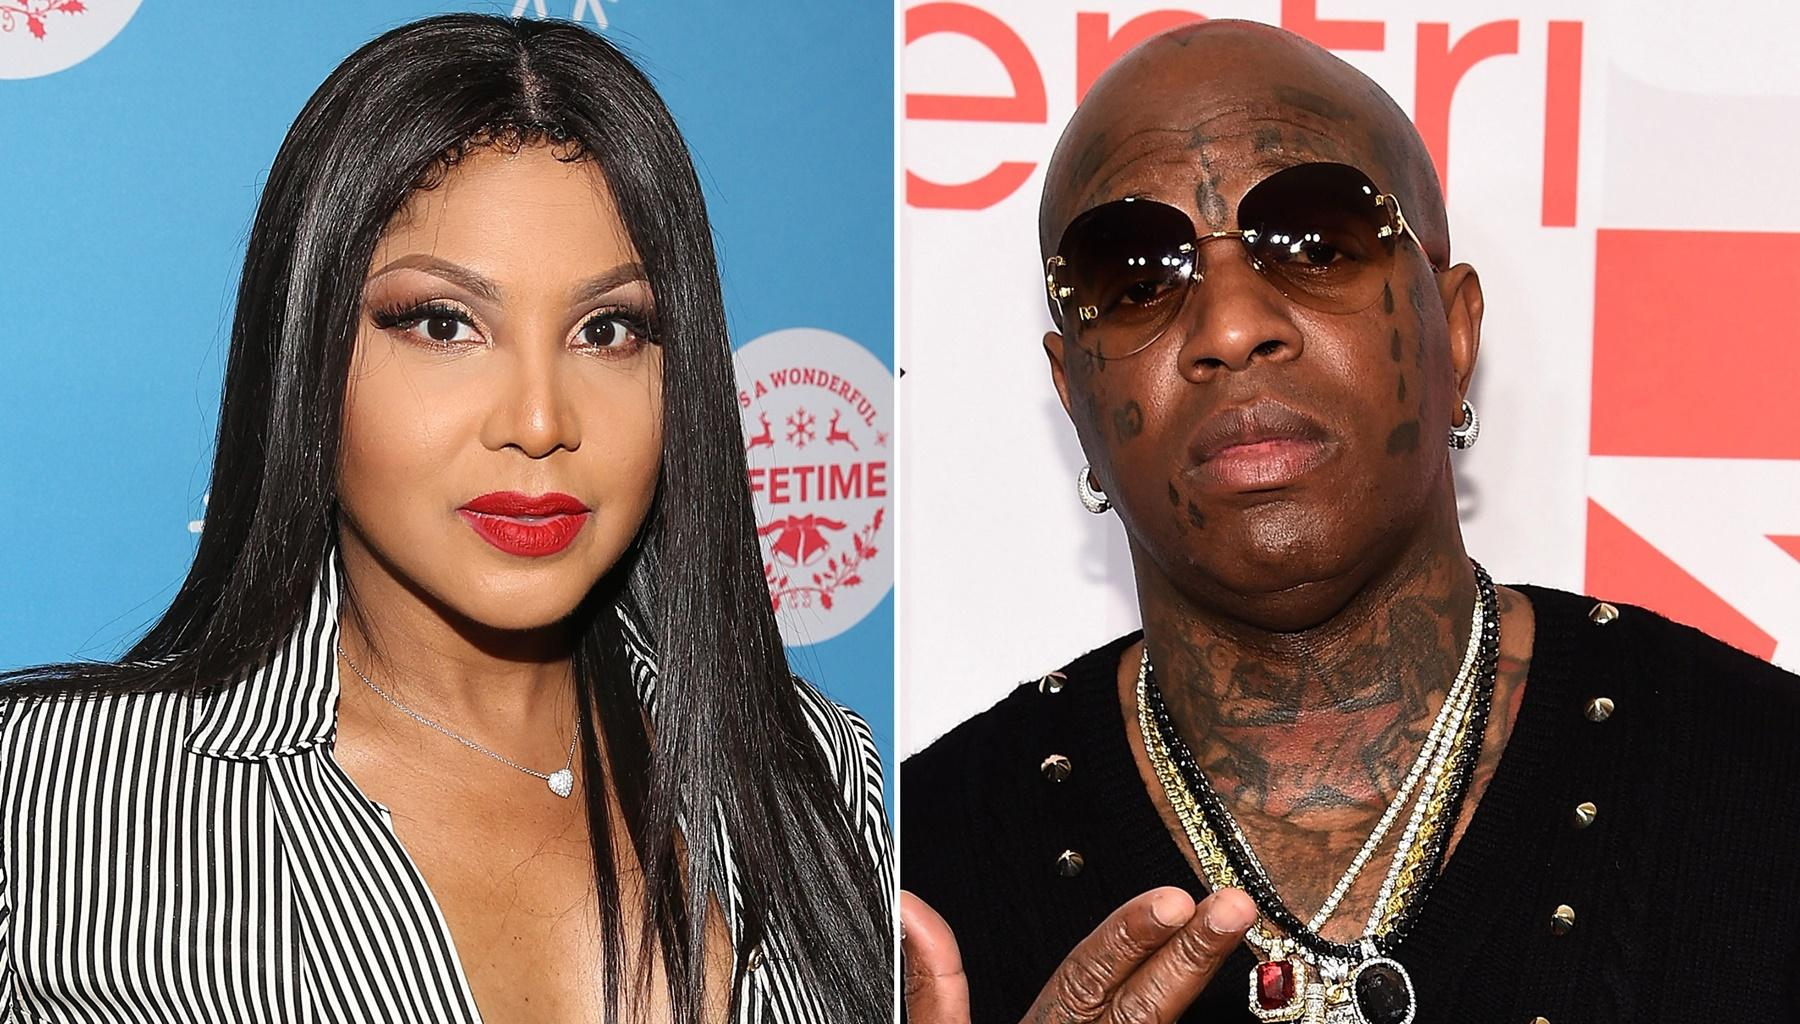 Toni Braxton Is Getting Her Wish, Birdman Makes Big Announcement, And Tamar Is Over The Moon